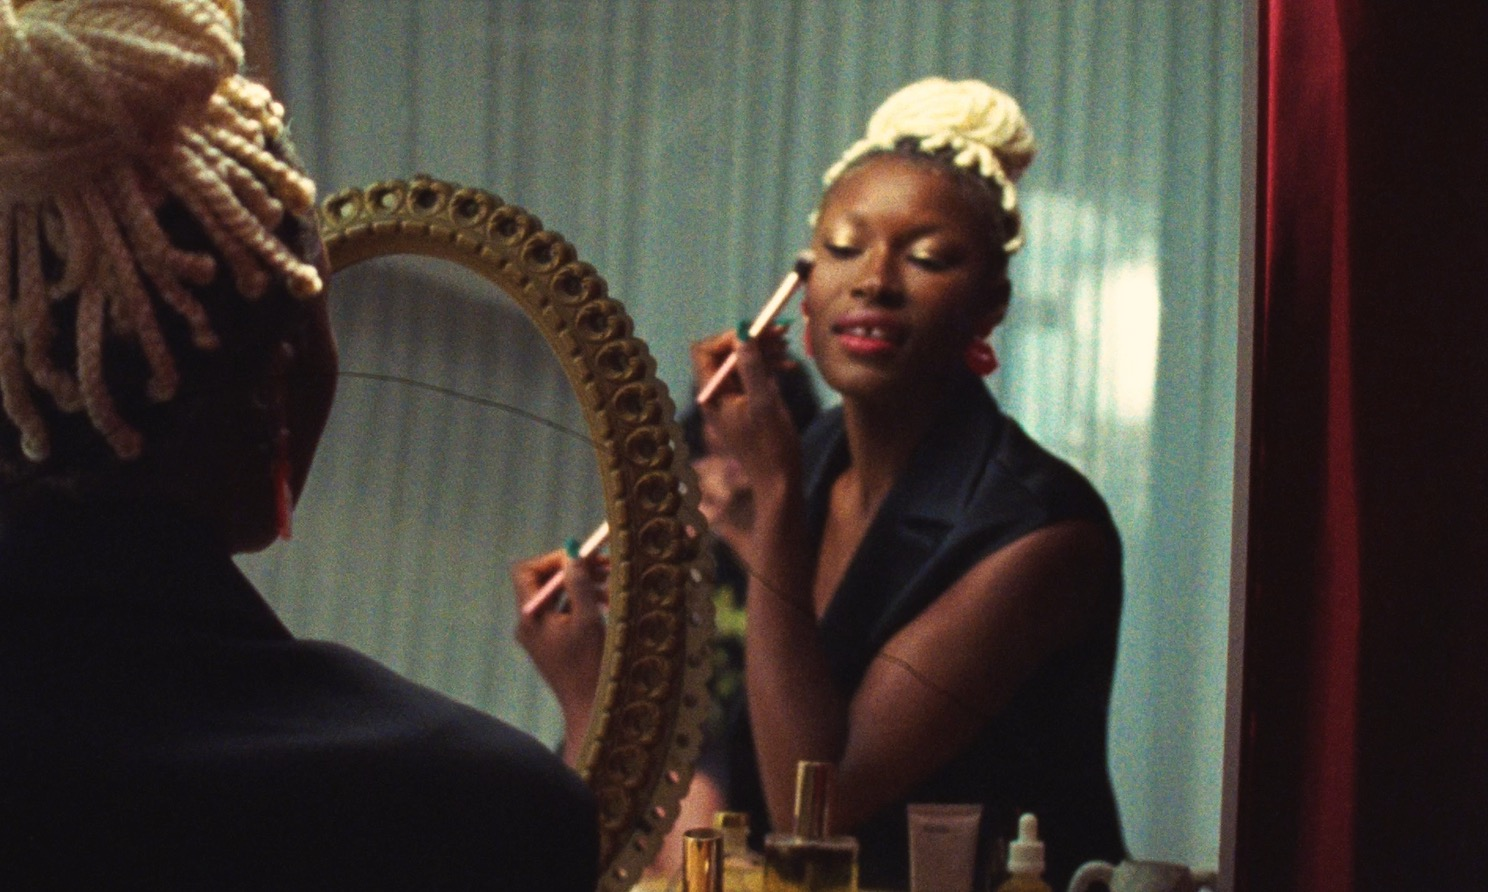 THE ICONIC utilises 16mm film for new beauty launch campaign via electriclimefilms